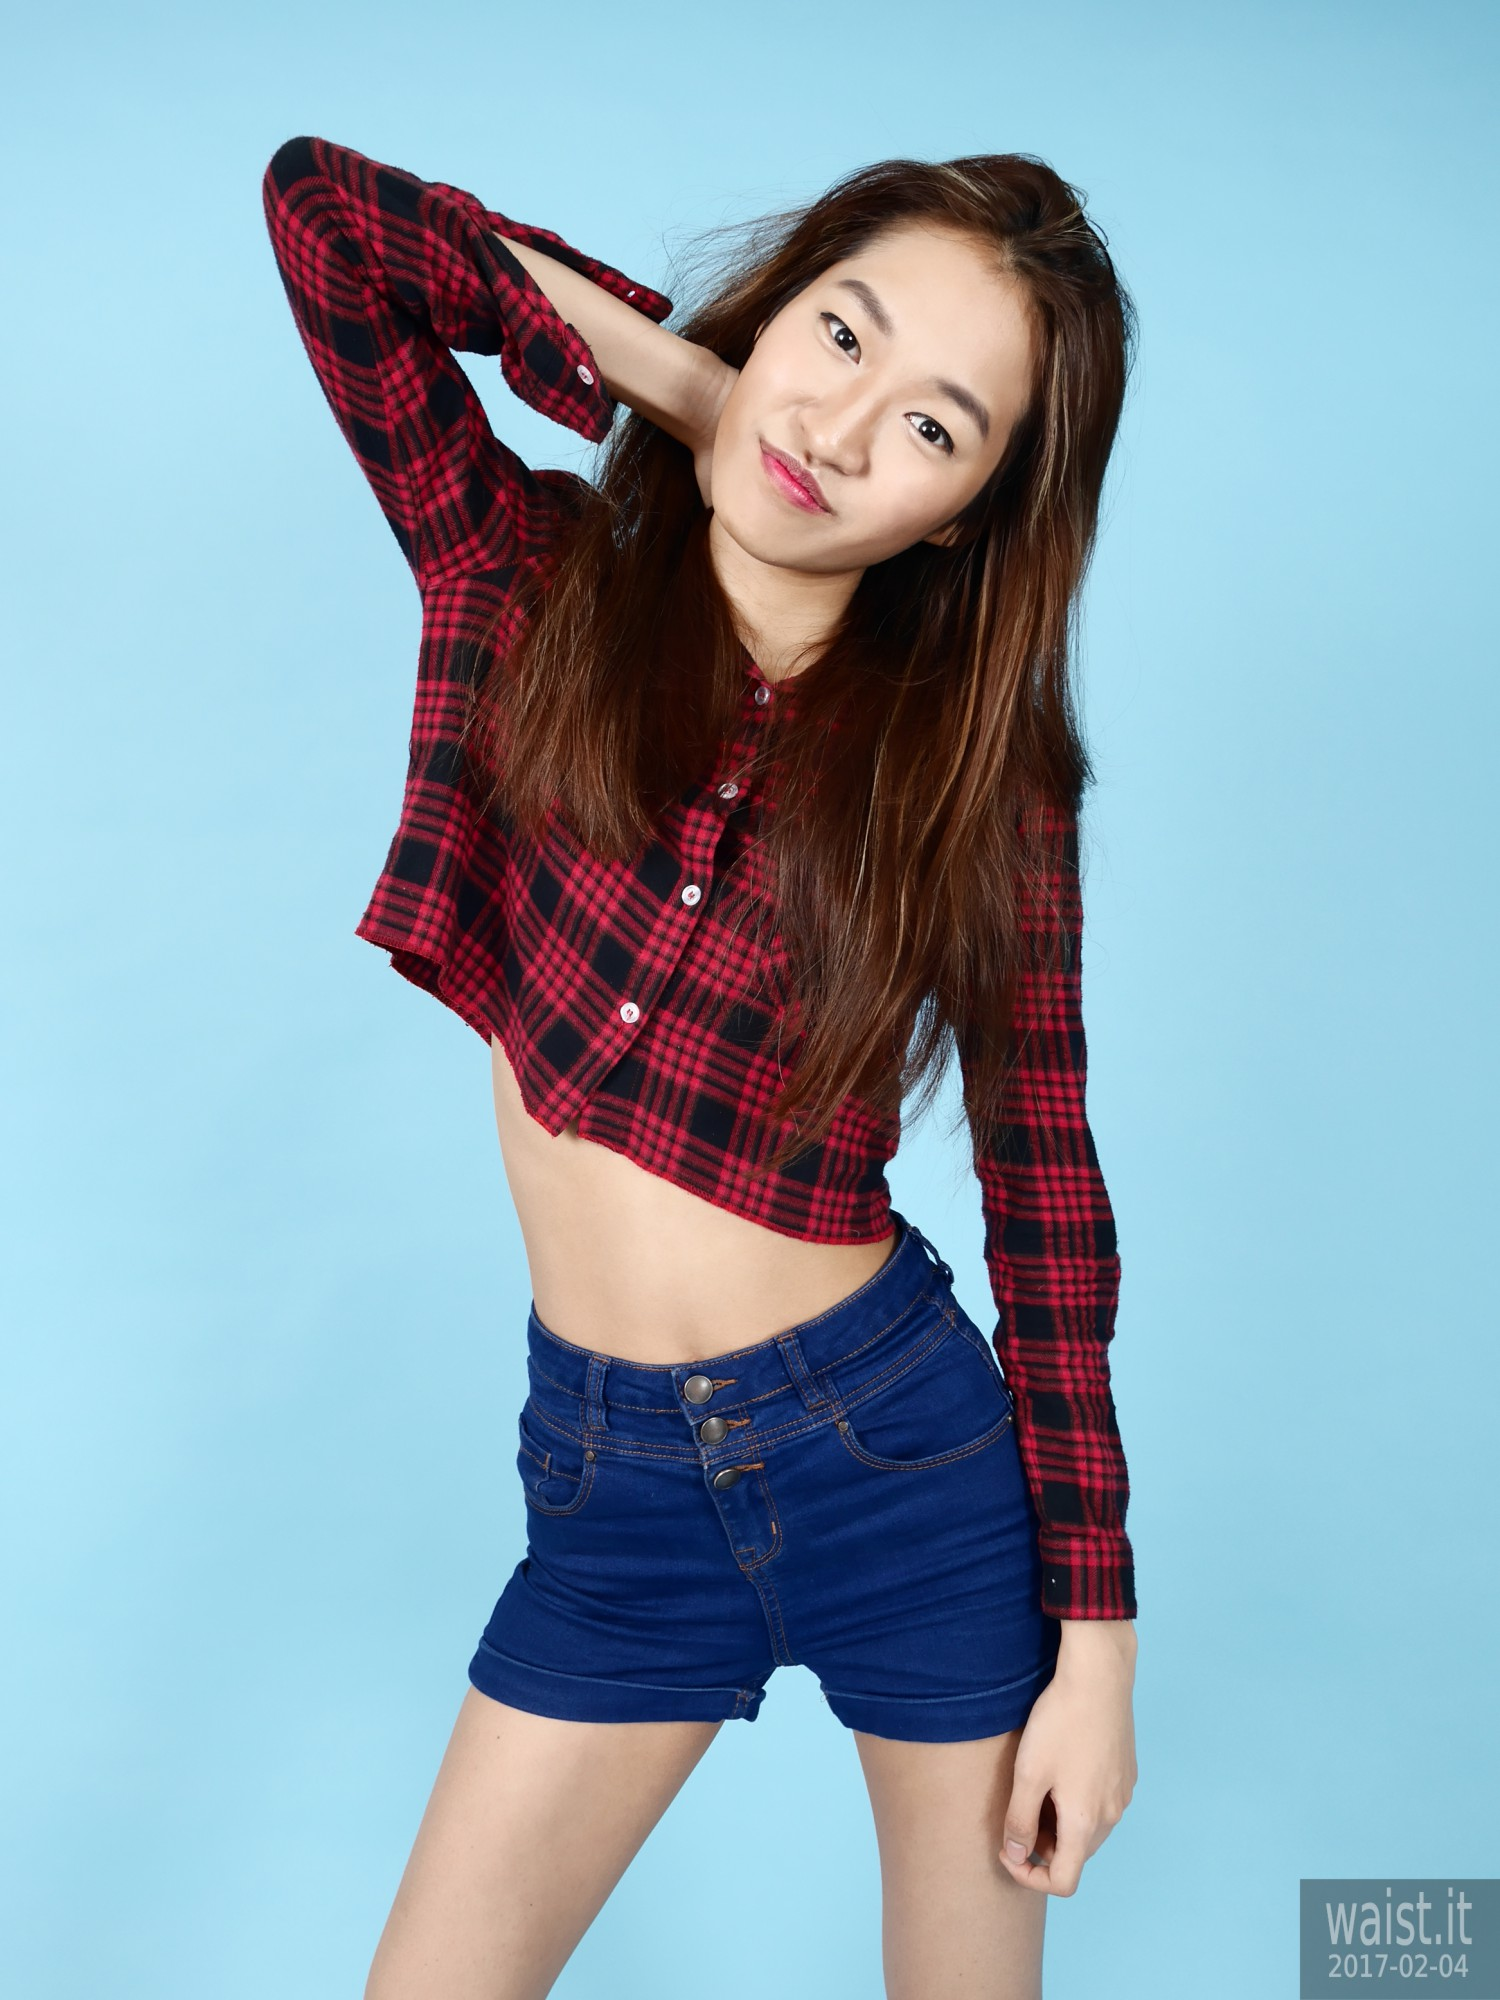 2017-02-04 Salina Pun in red check shirt and blue shorts - chosen by model